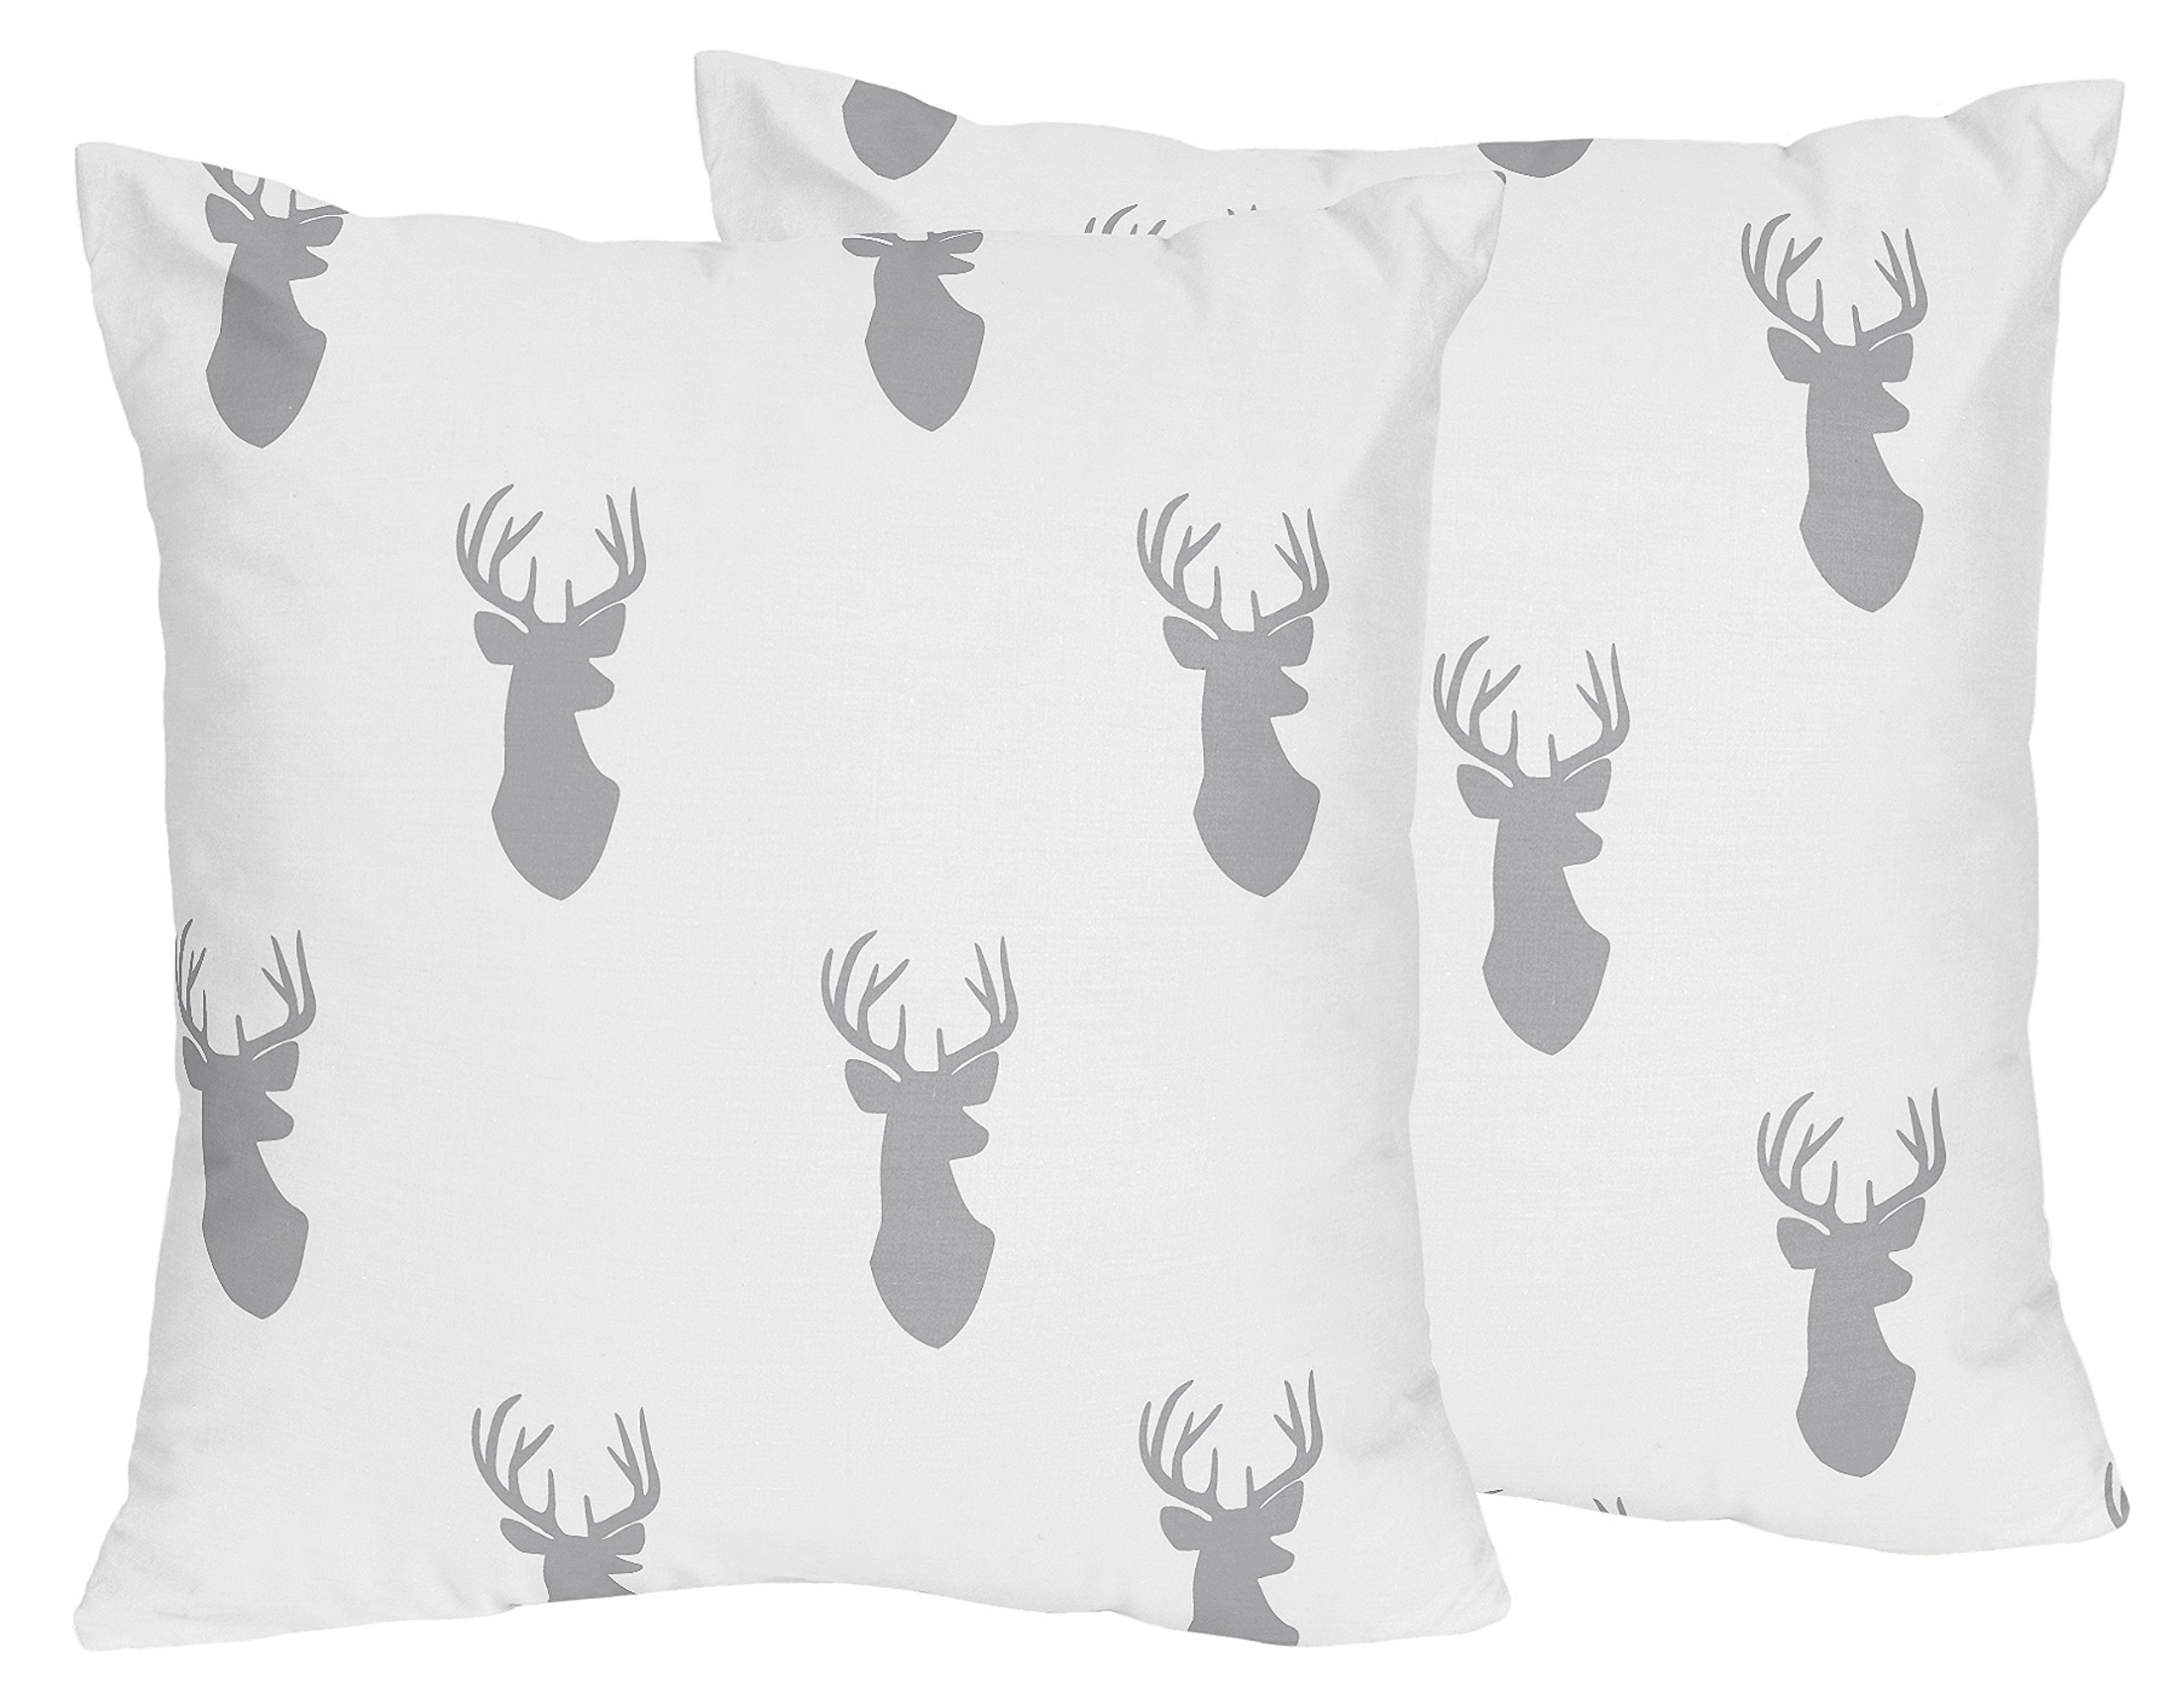 Sweet Jojo Designs 2-Piece Grey and White Woodland Deer Decorative Accent Throw Pillows by Sweet Jojo Designs